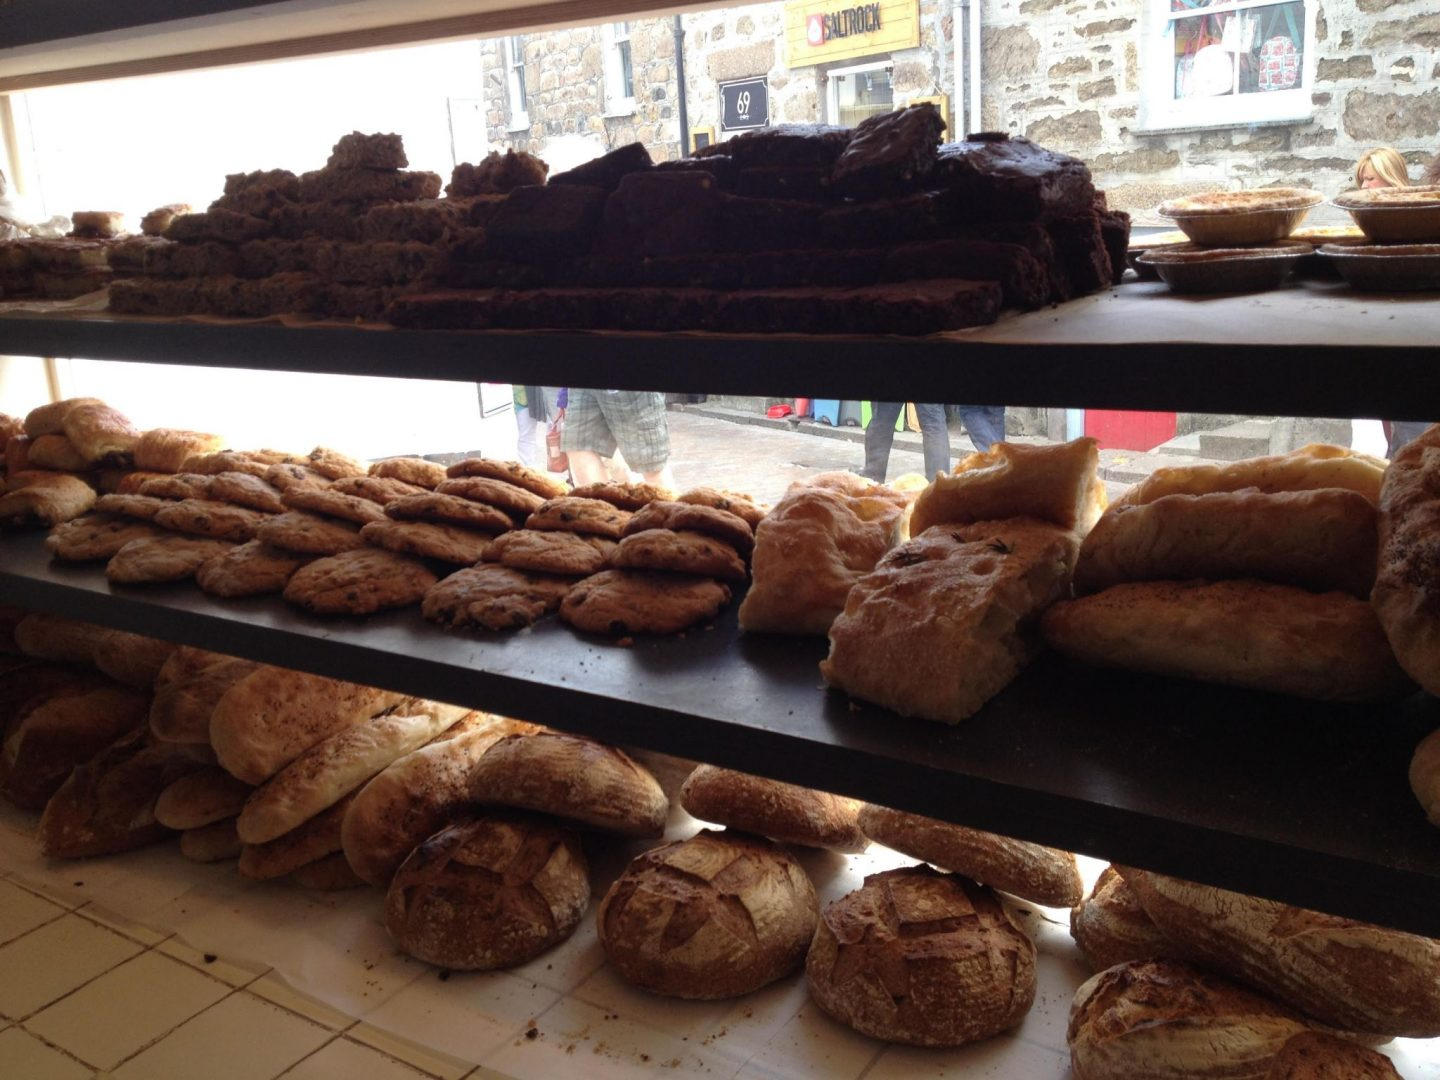 Bakery in St Ives, Cornwall